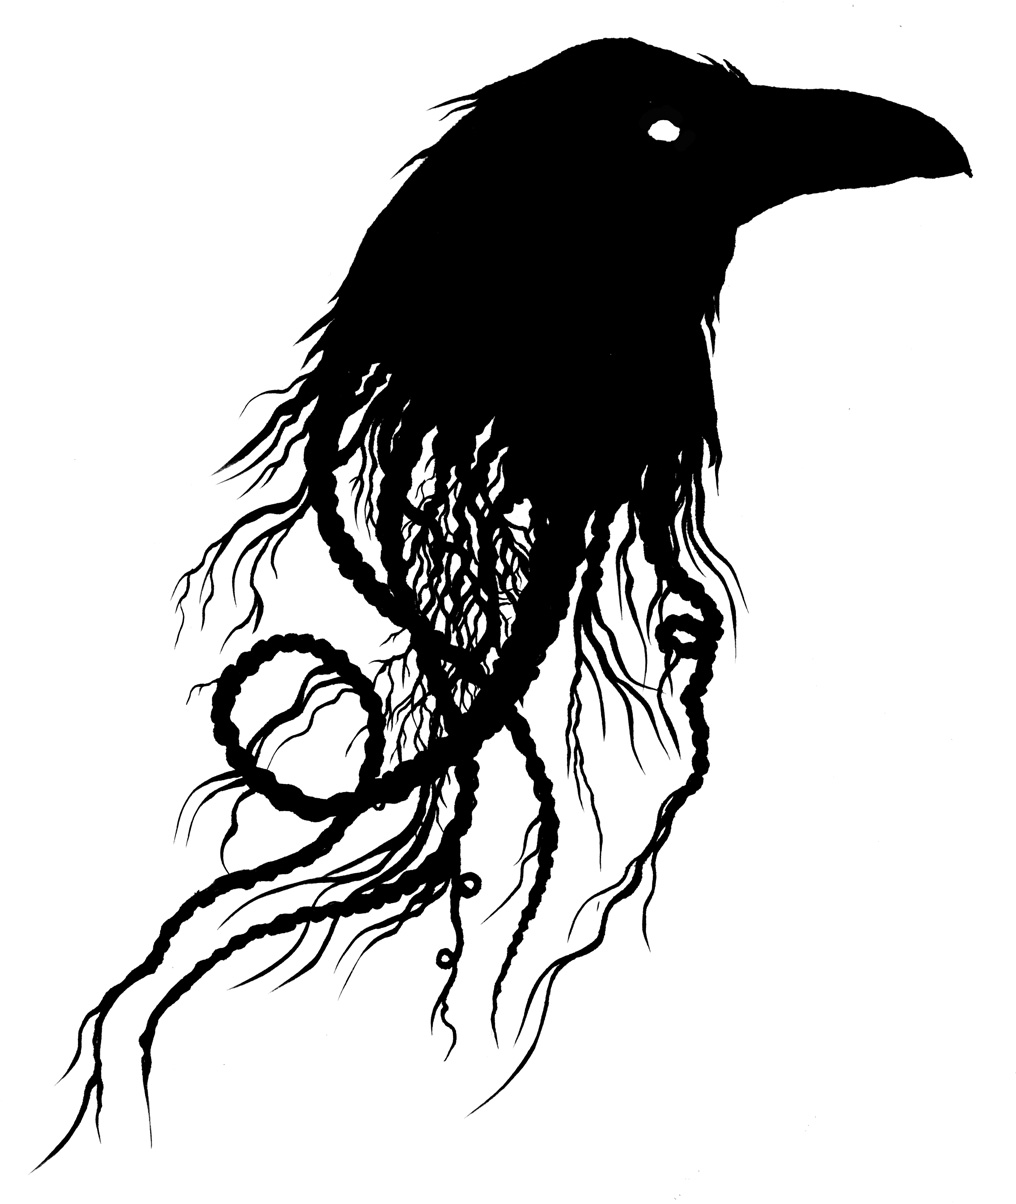 evil flying crow drawing photo1